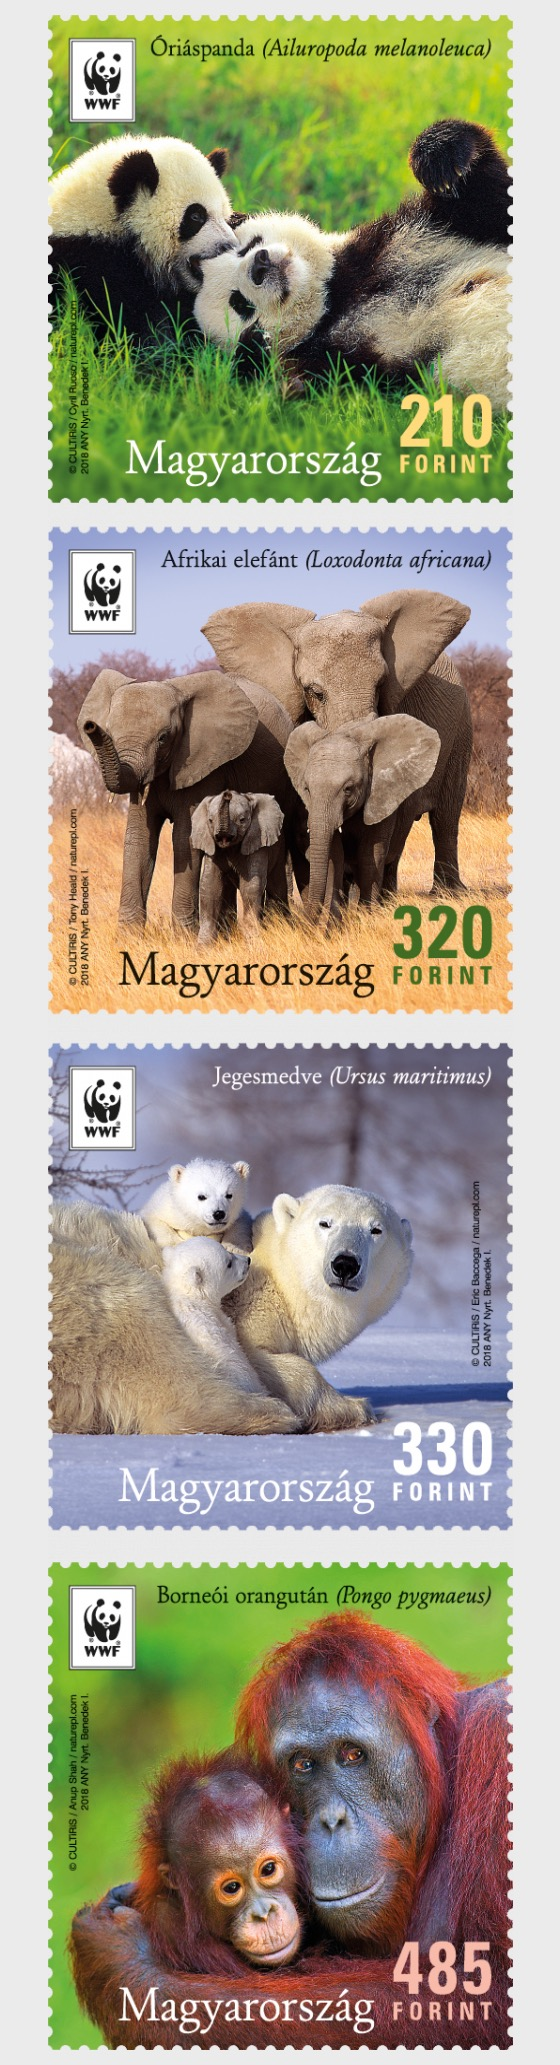 WWF Hungary - Earth's Iconic Animals - Set